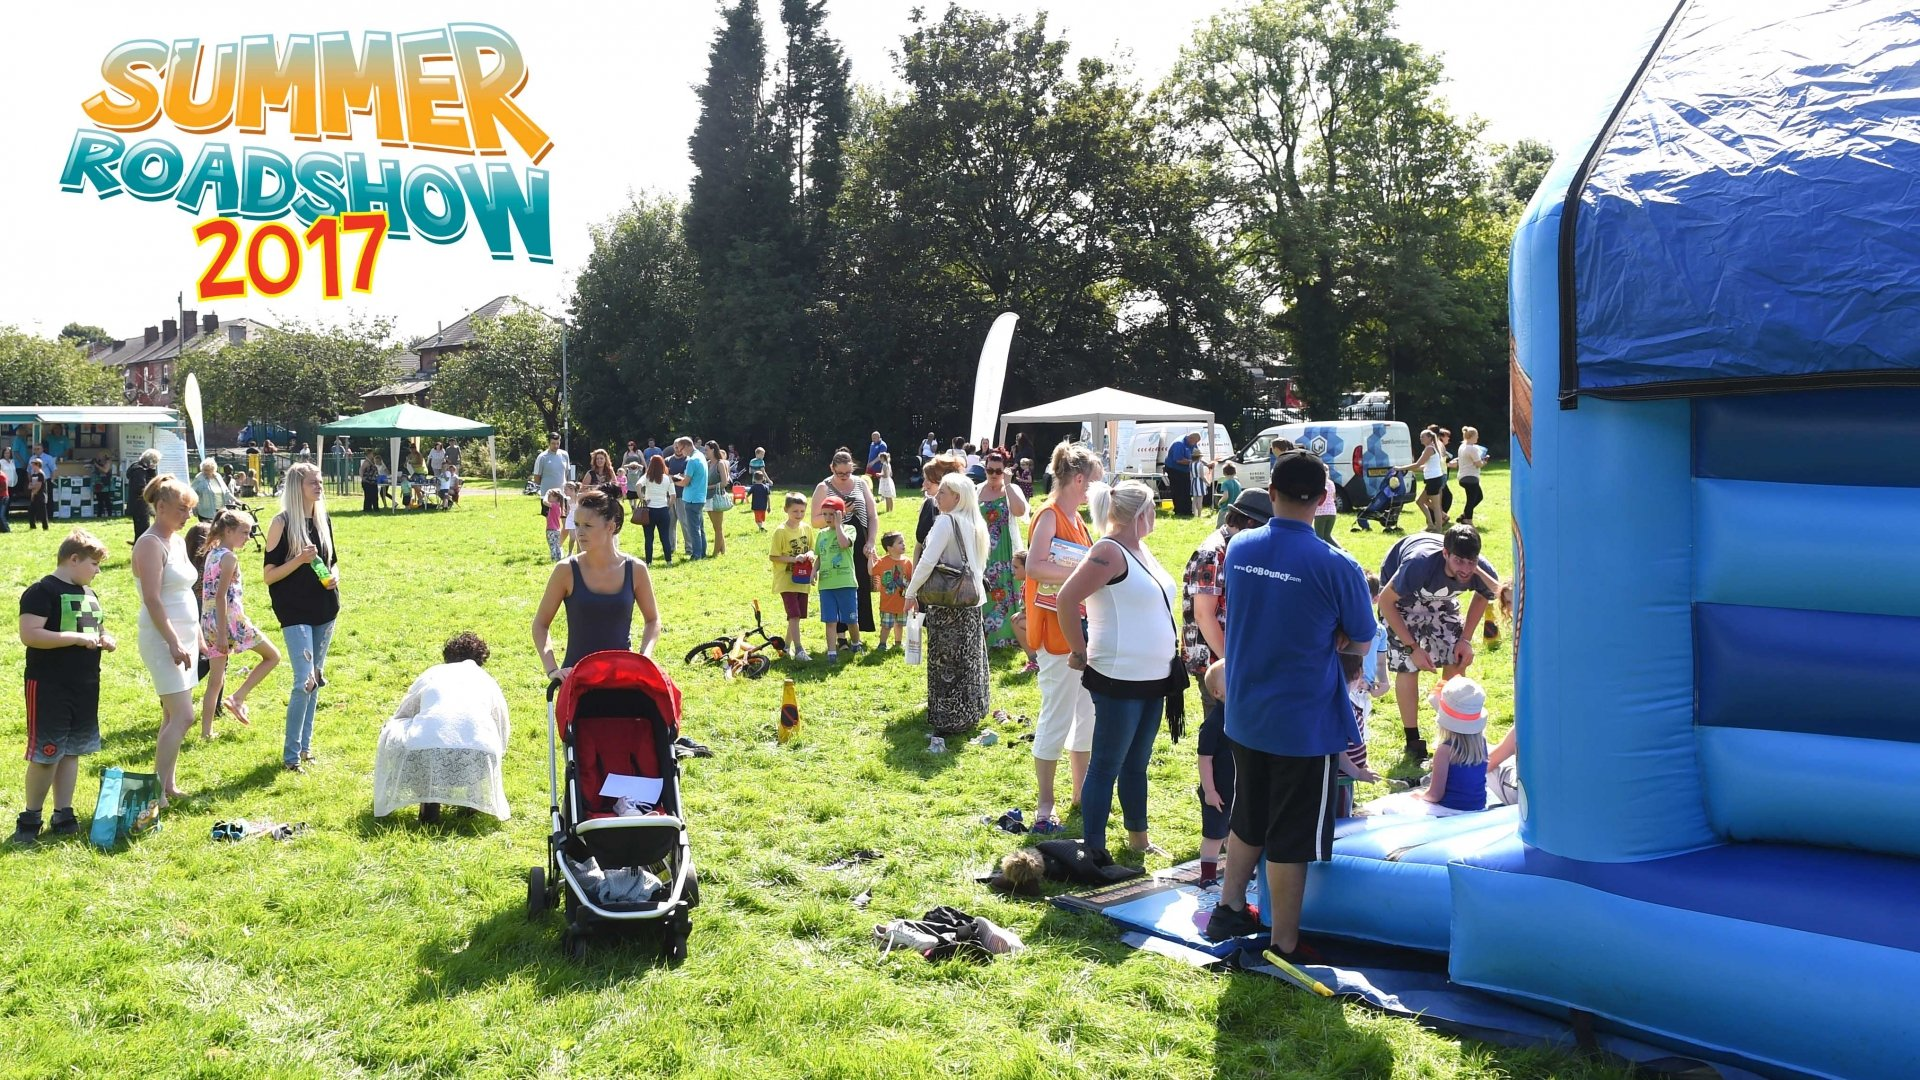 Six Town Housing's Summer Roadshow Returns